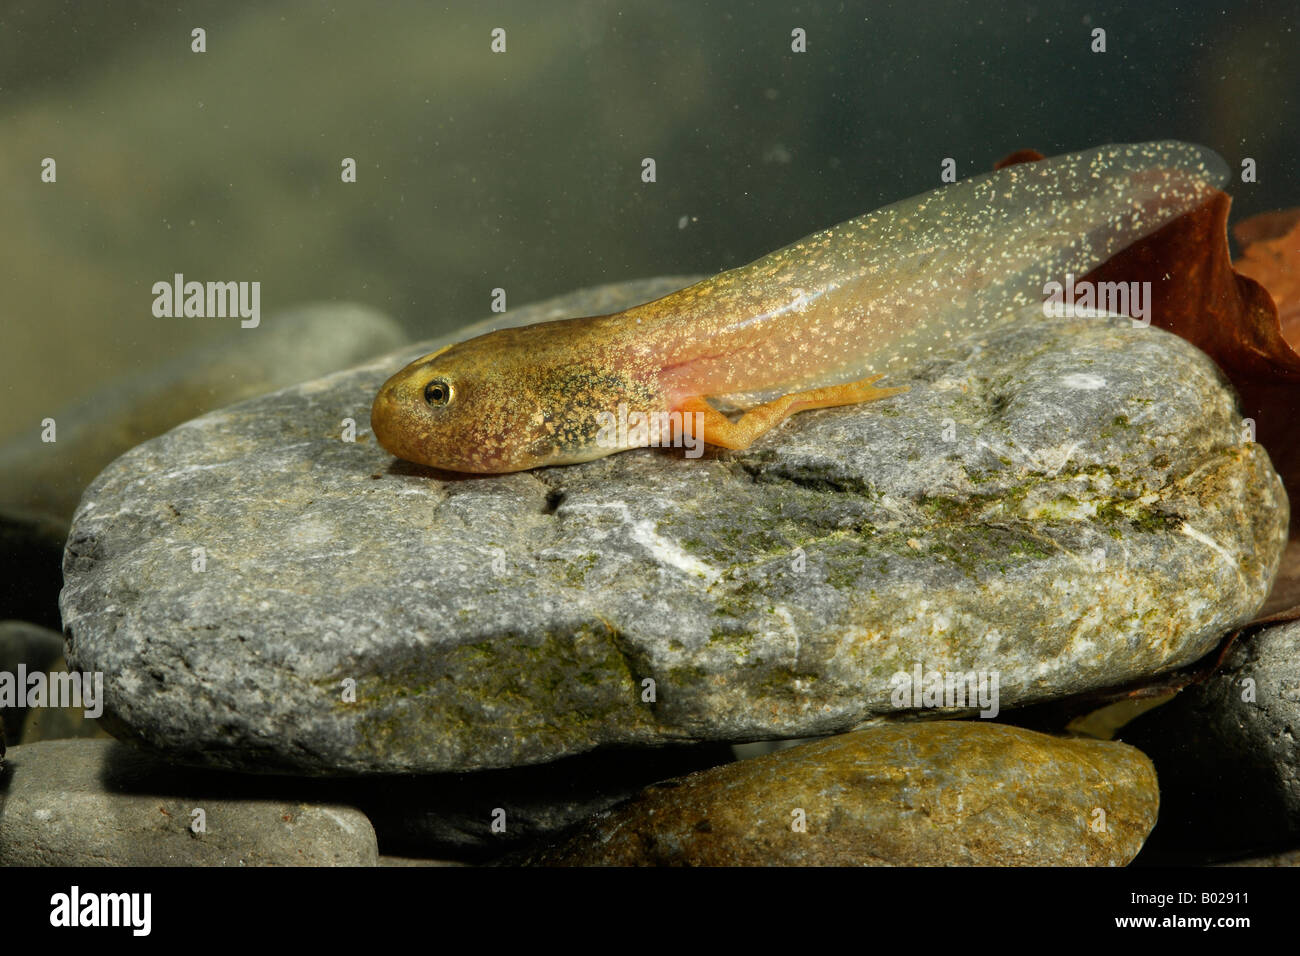 Common Frog (Rana temporaria), tadpole with hind legs and tail - Stock Image